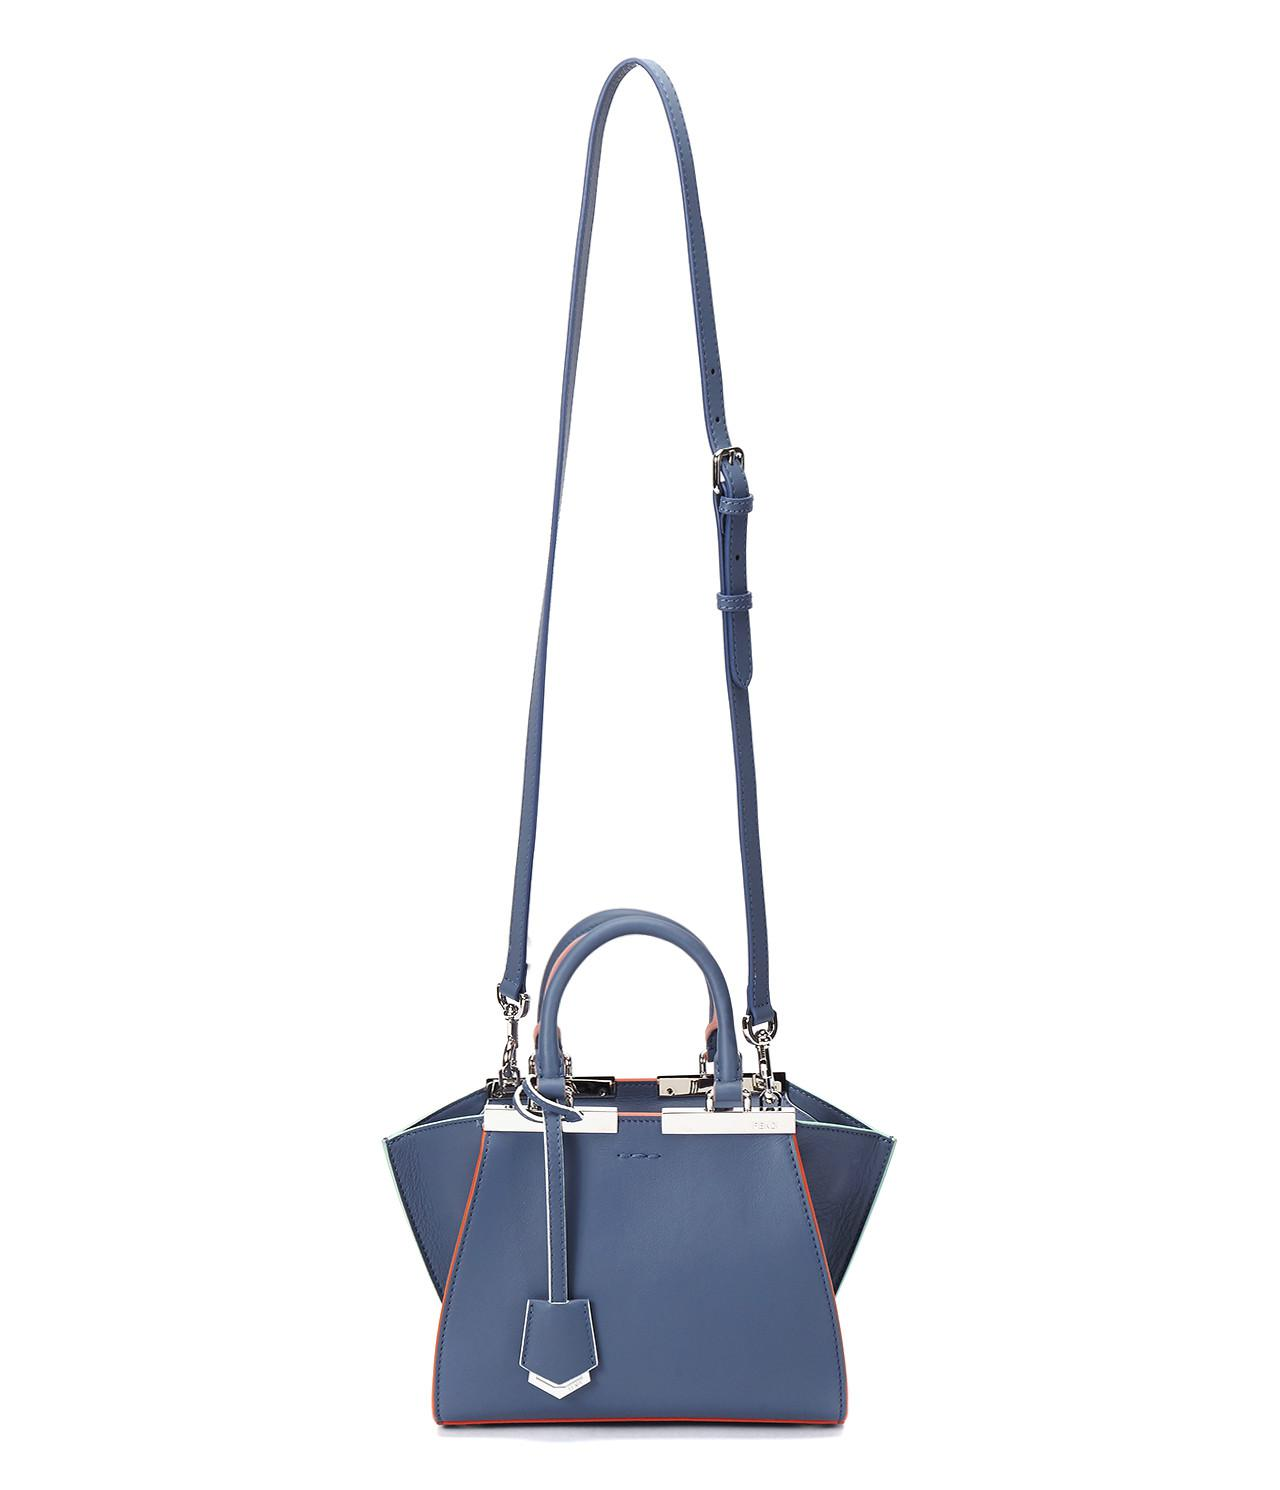 245e013078 Gallery. Previously sold at  Nowlet · Women s Bag Charms Women s Fendi  3jours ...